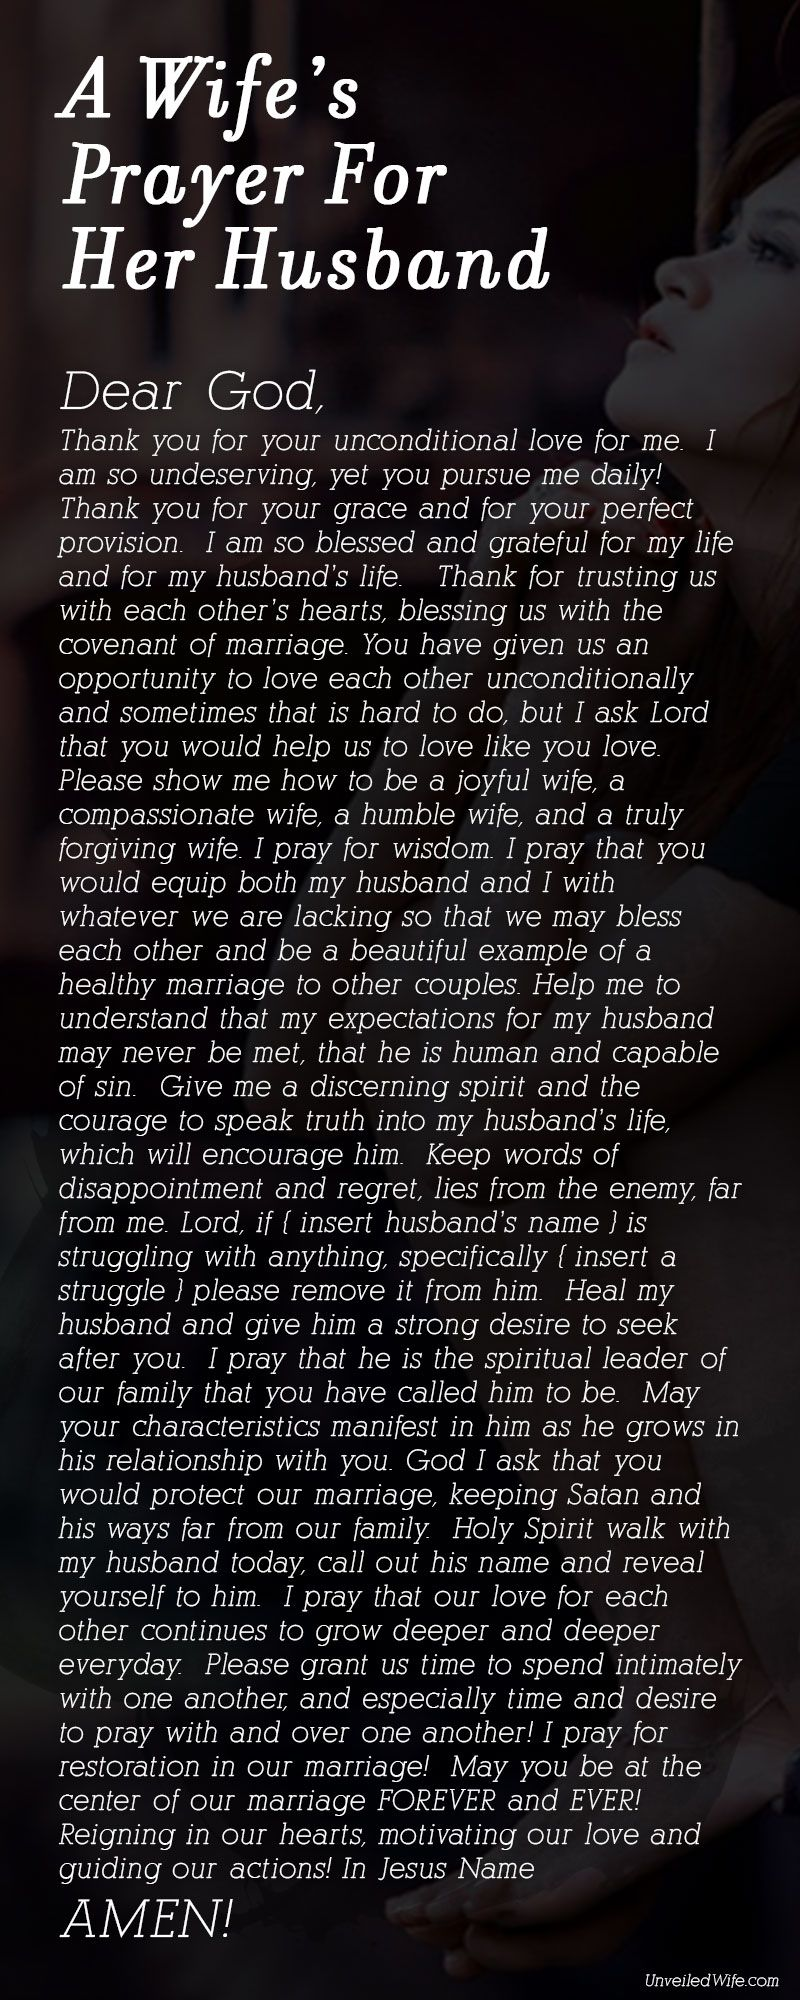 A wifes prayer for her husband marriage prayer and holy spirit a wifes prayer for her husband mitanshu Choice Image